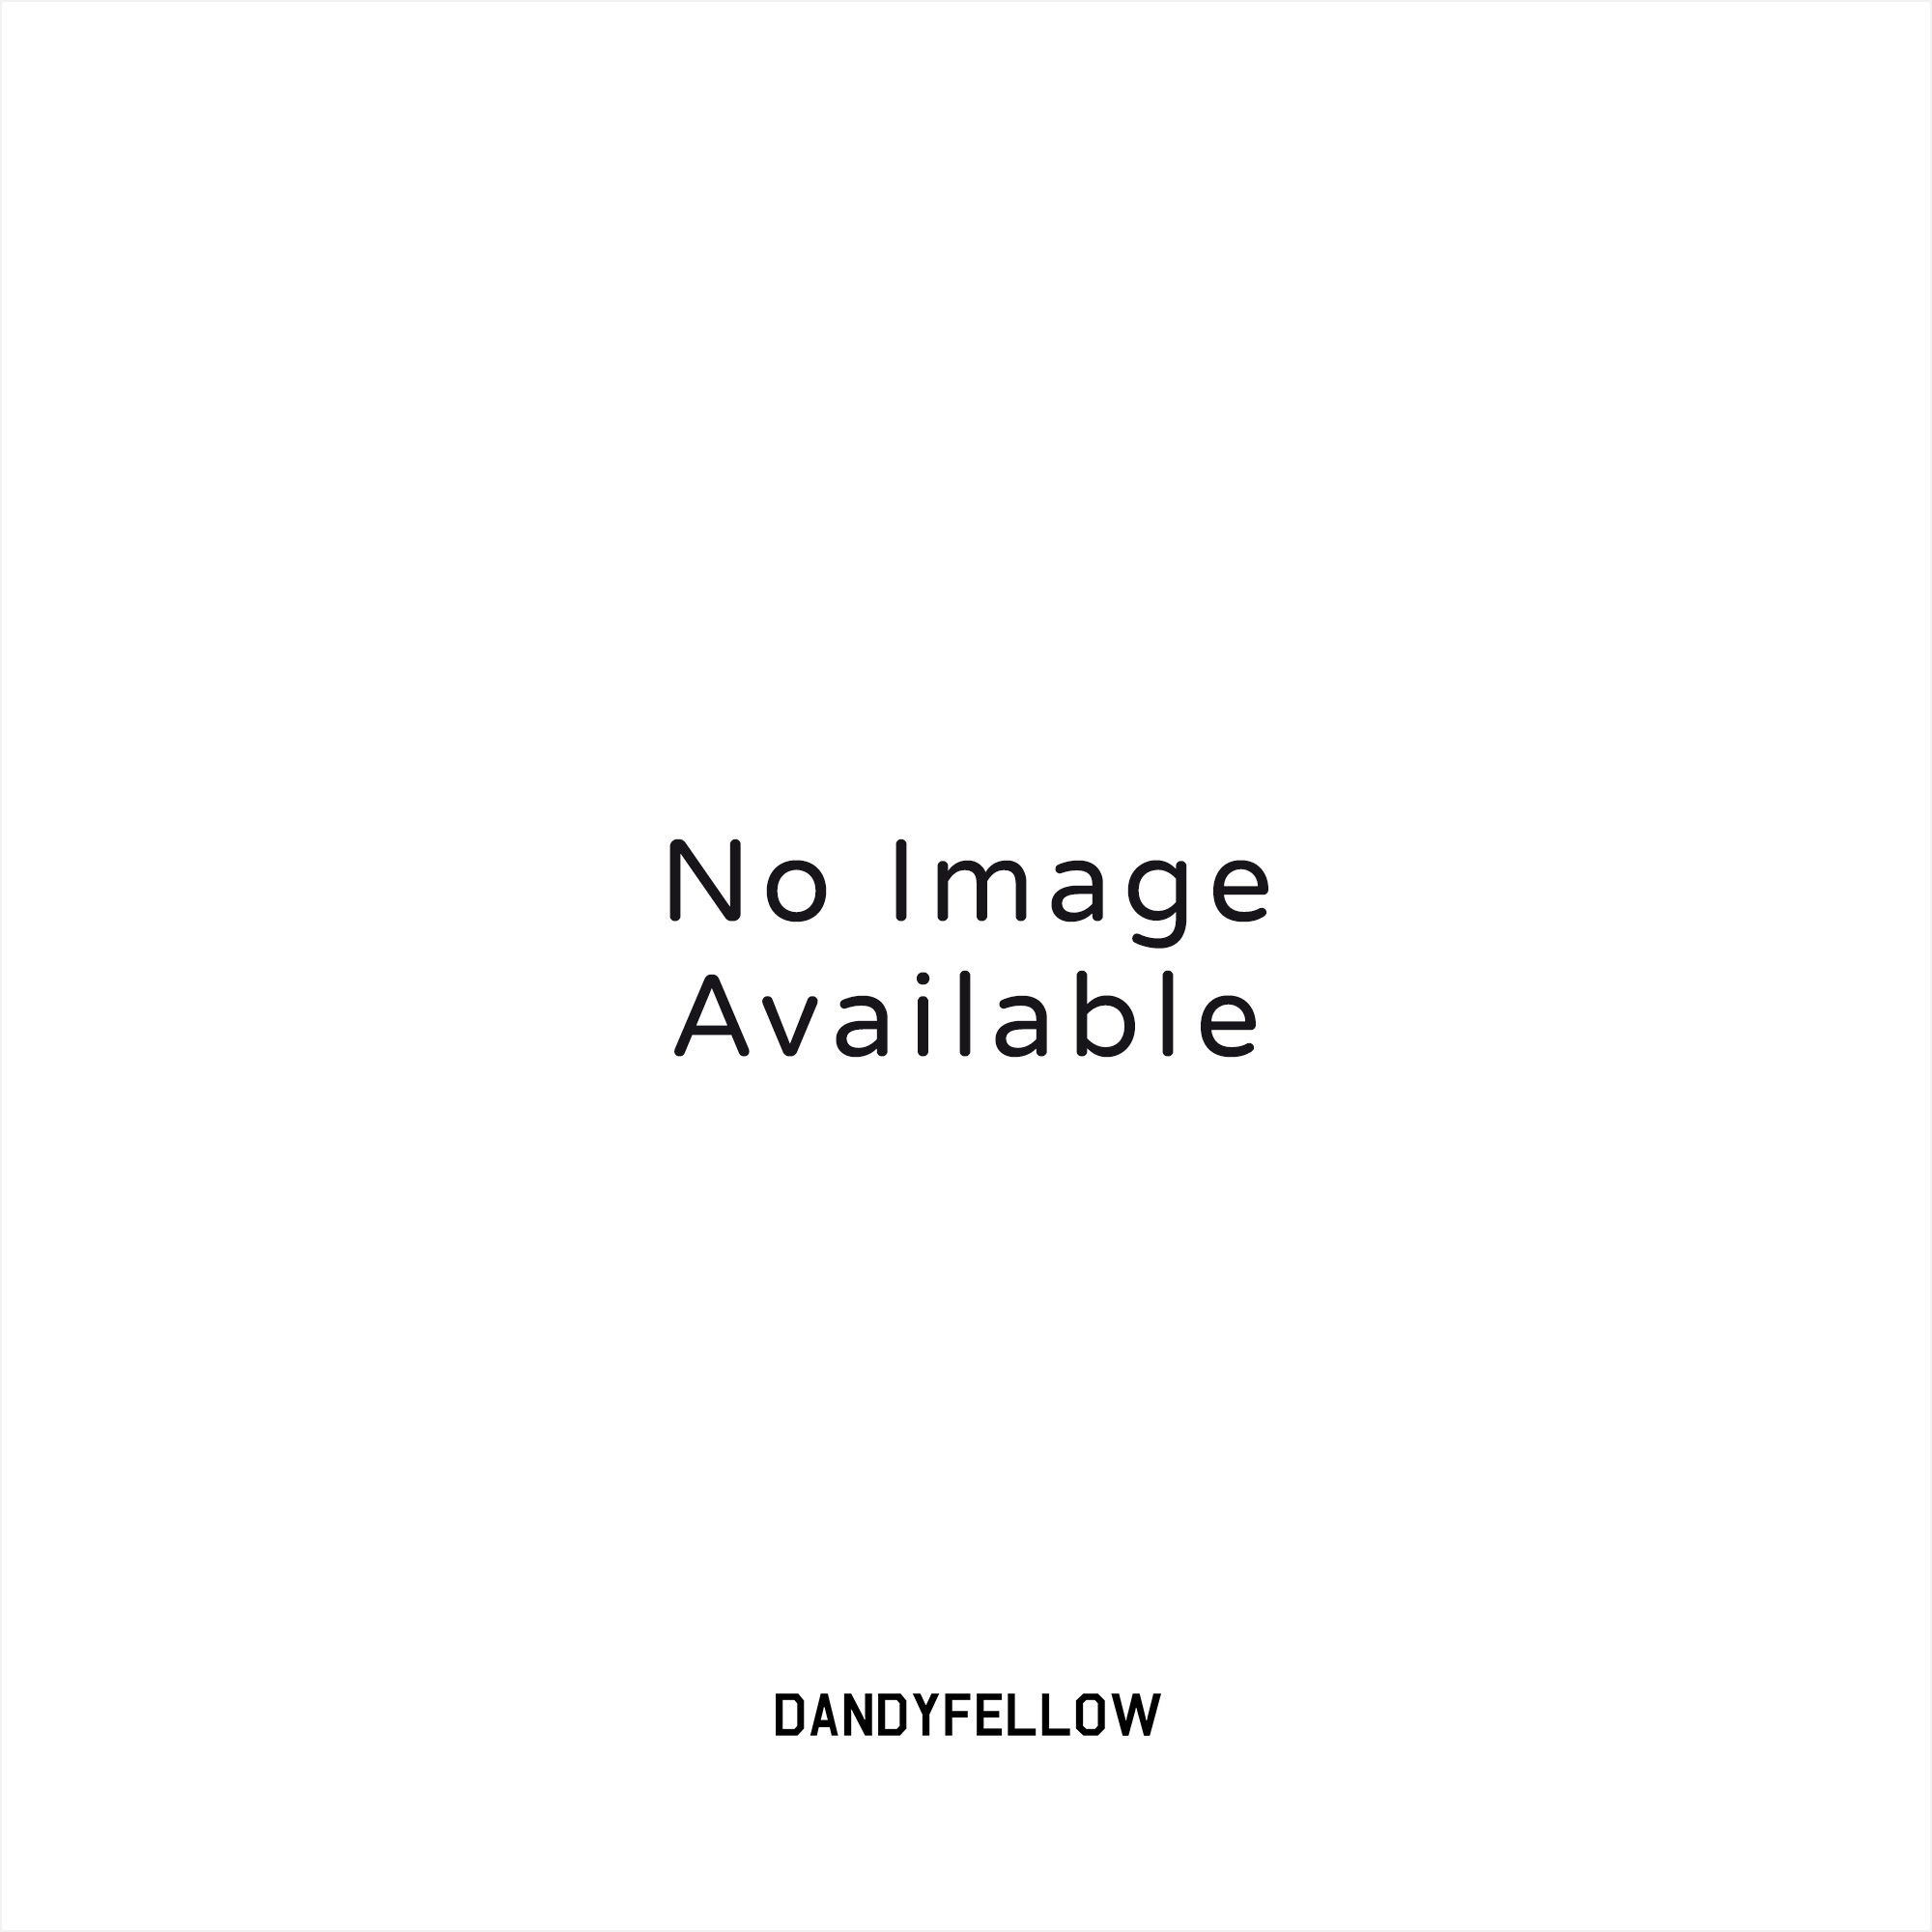 1524ff124b03 adidas Originals Adilette Slides (Adiblue) at Dandy Fellow